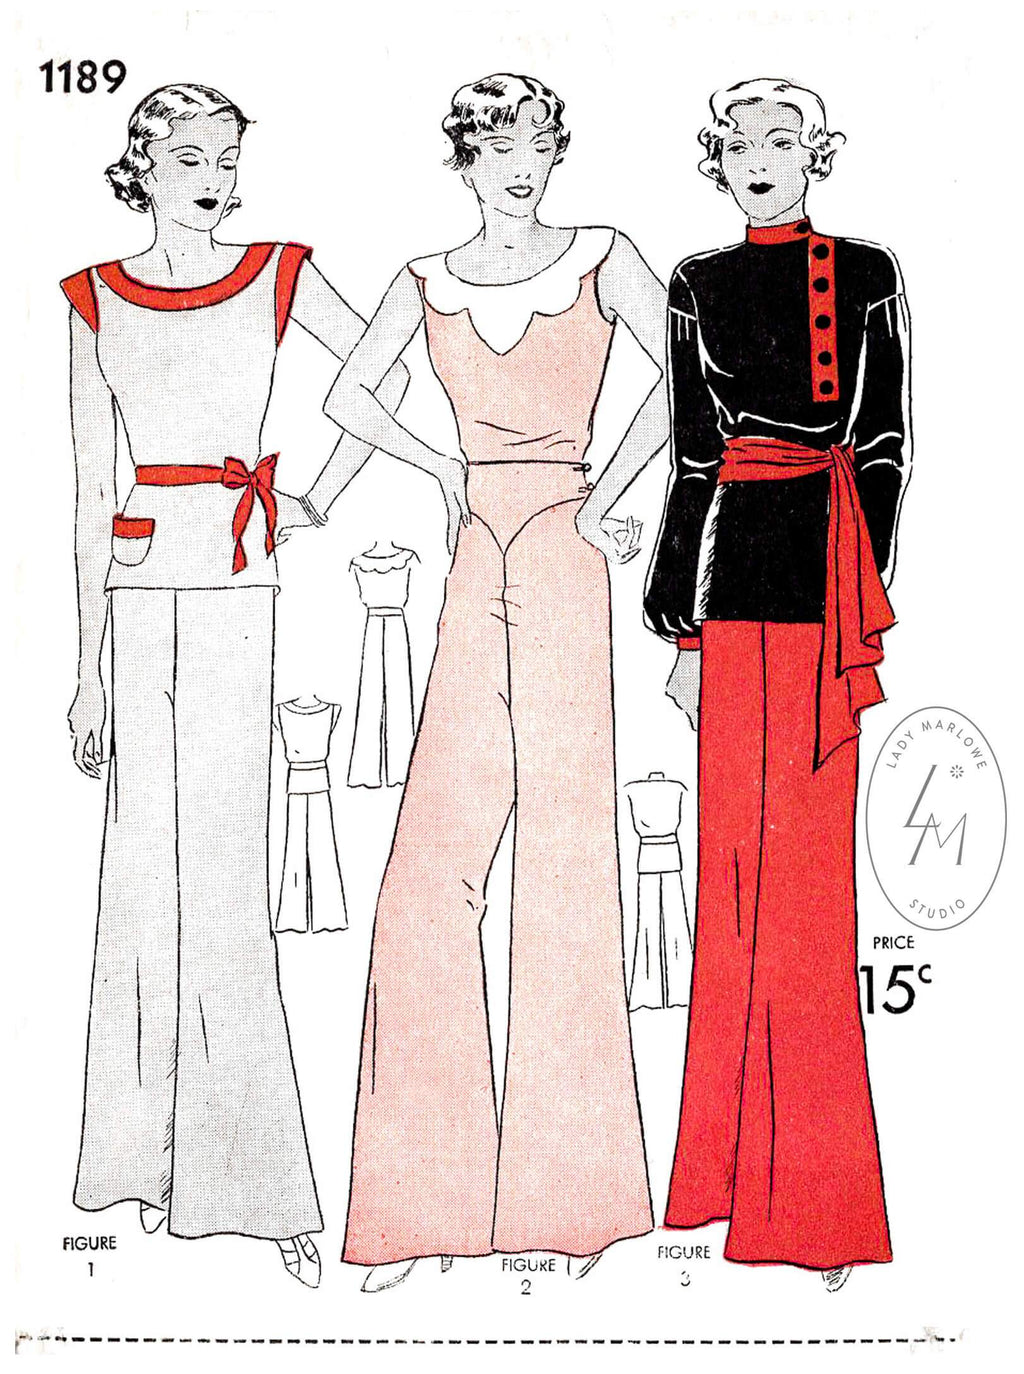 Simplicity 1189 1930s beachwear pajamas pyjama jumpsuit loungewear vintage sewing pattern reproduction